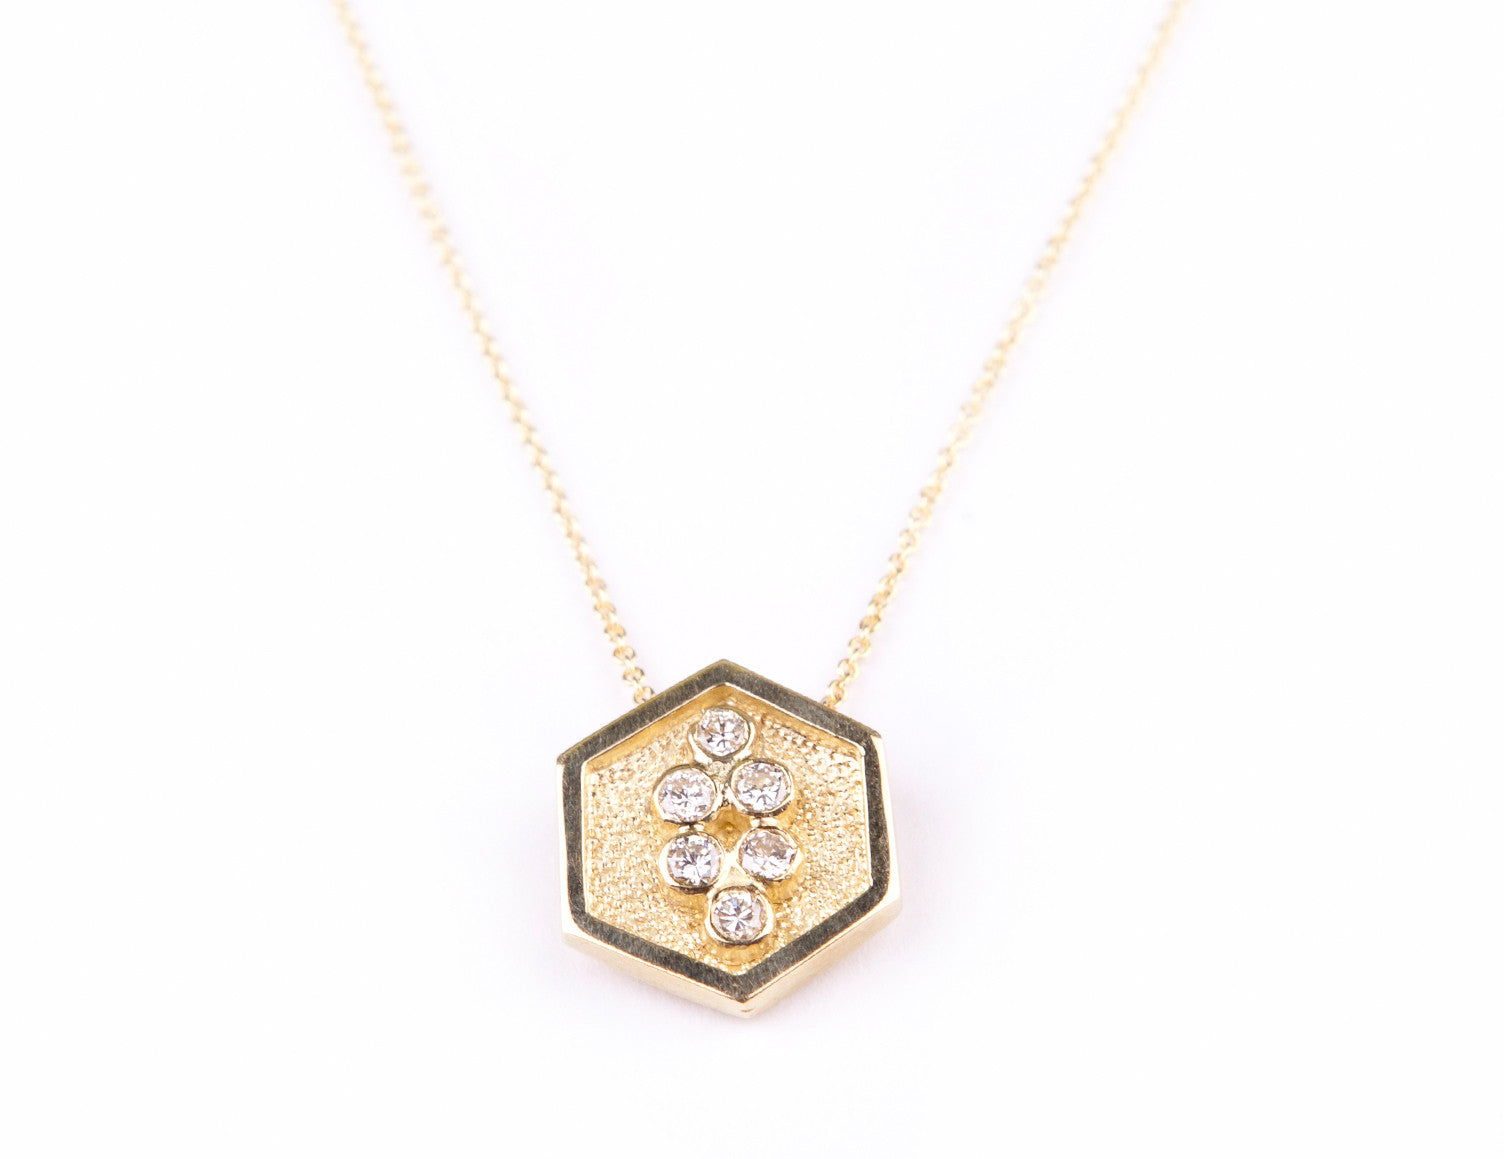 SMALL HEXA PENDANT WITH CHAIN